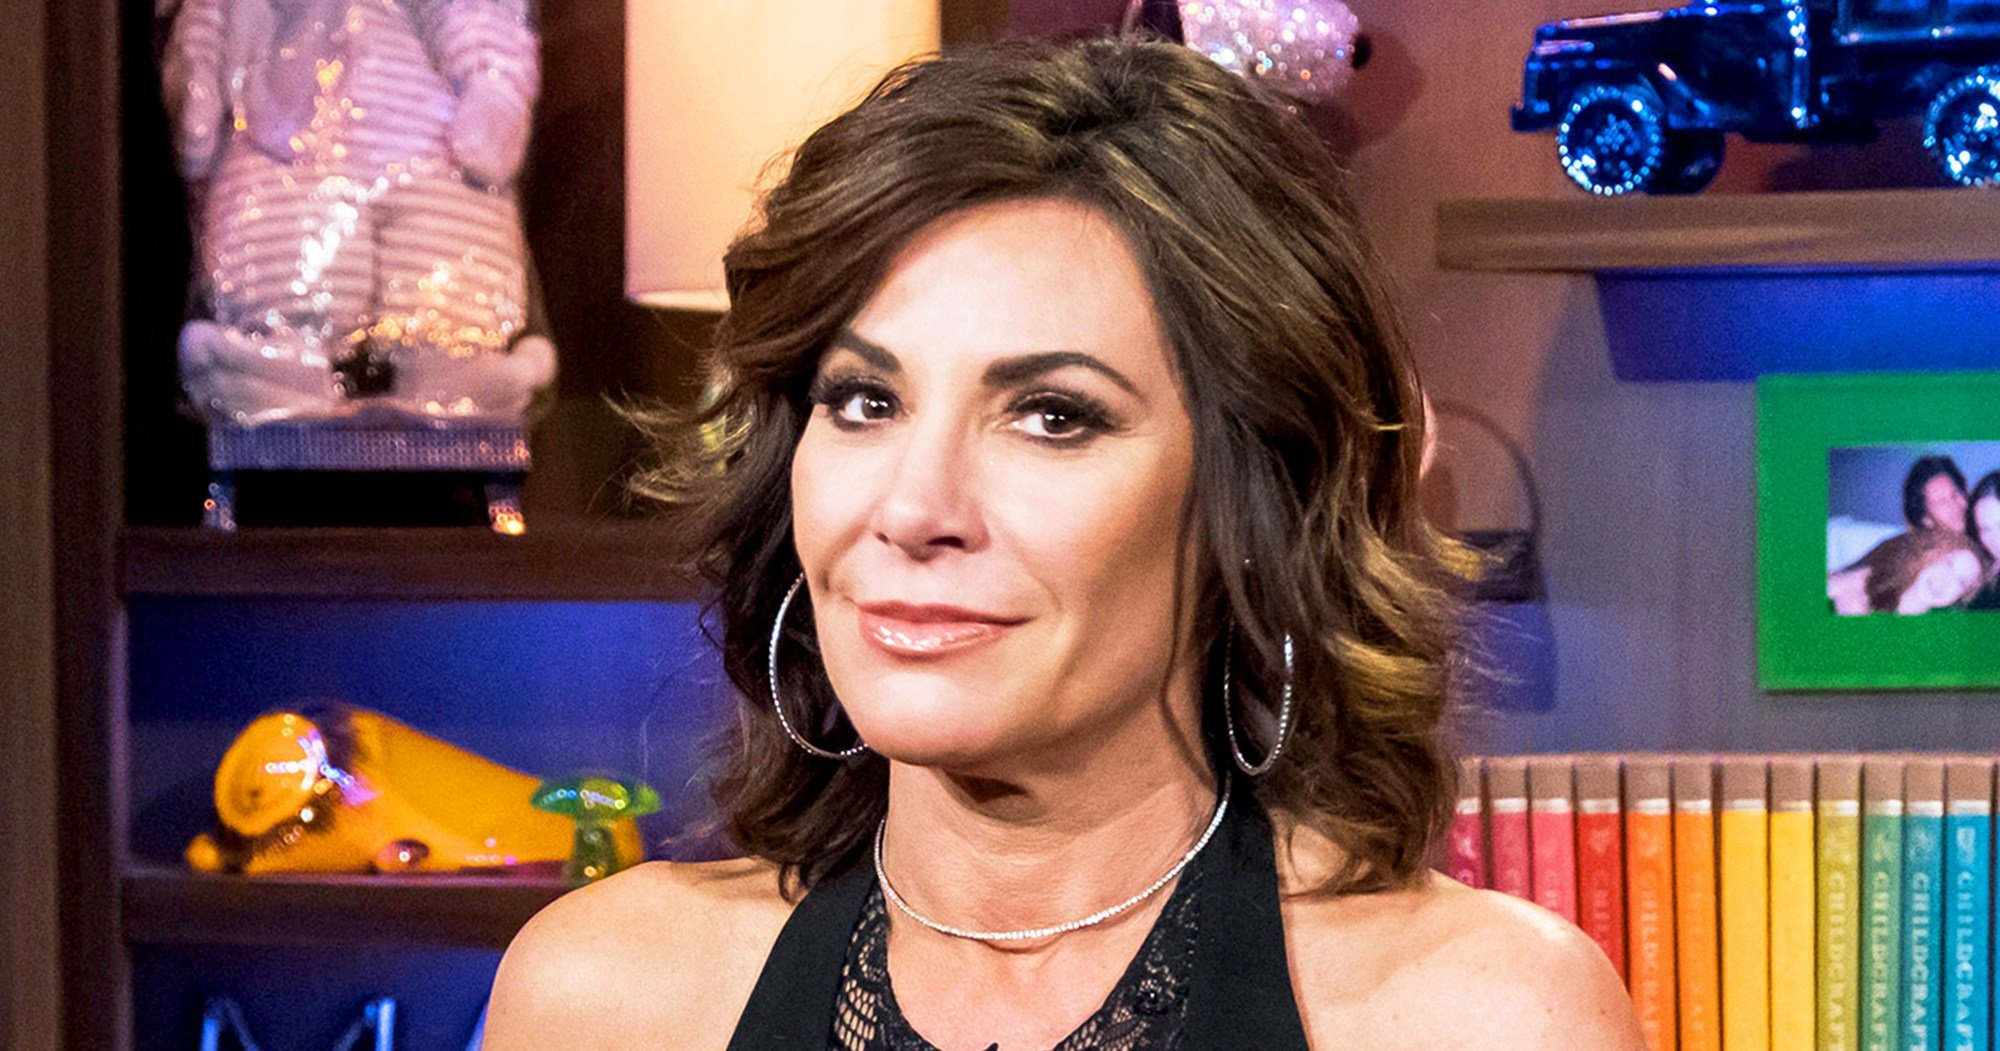 Luann de Lesseps Claims She May Have Been Drugged Before Arrest